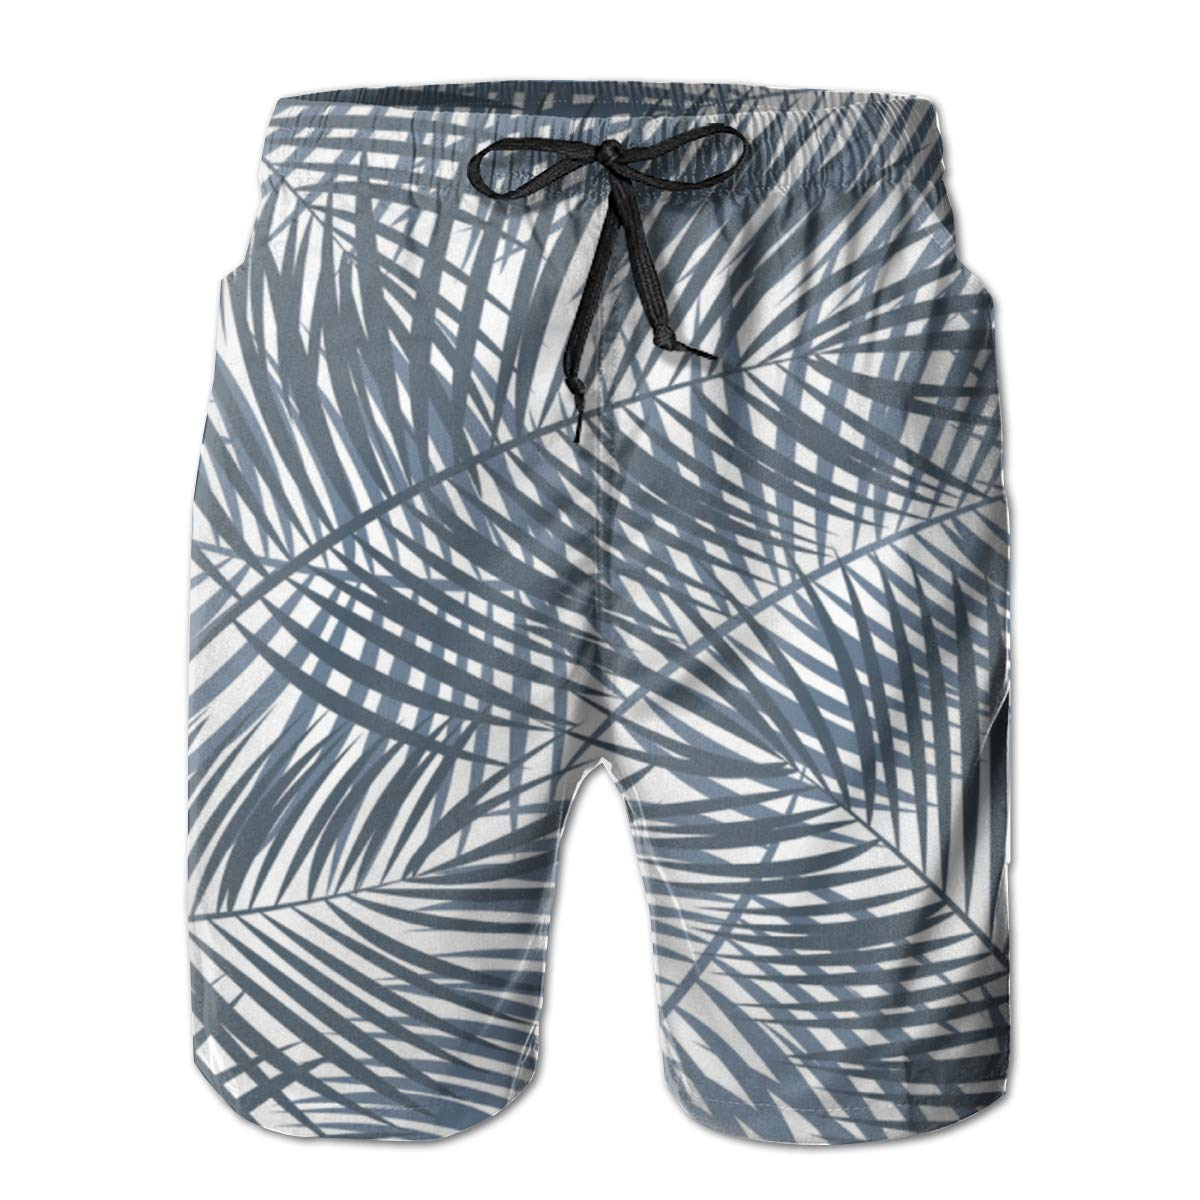 BE6h Mens Casual Beach Fast Dry Swimming Board Shorts Trousers for Young Man